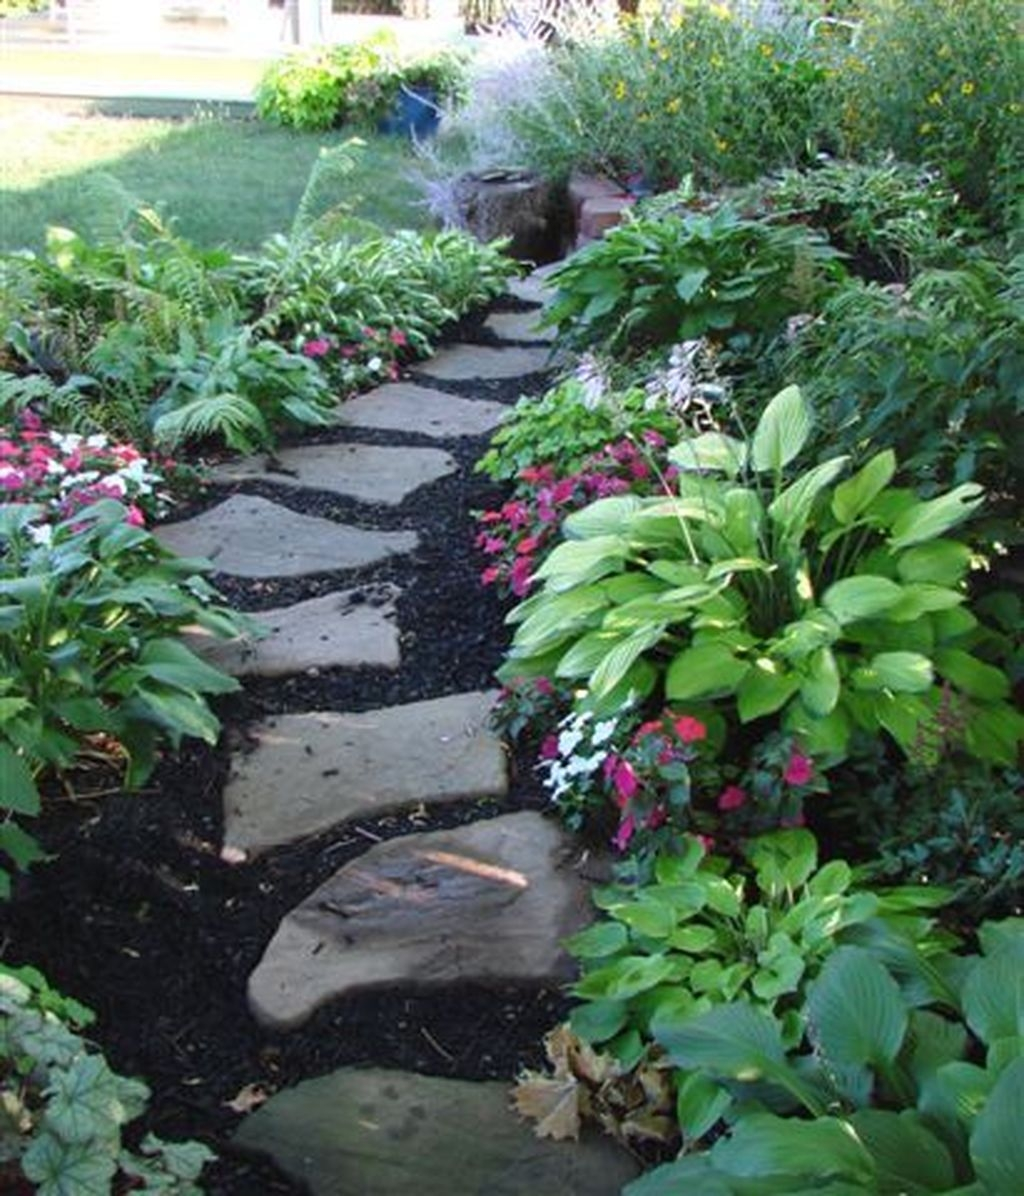 Inspiring Stepping Stone Pathway Decor Ideas For Your Garden24